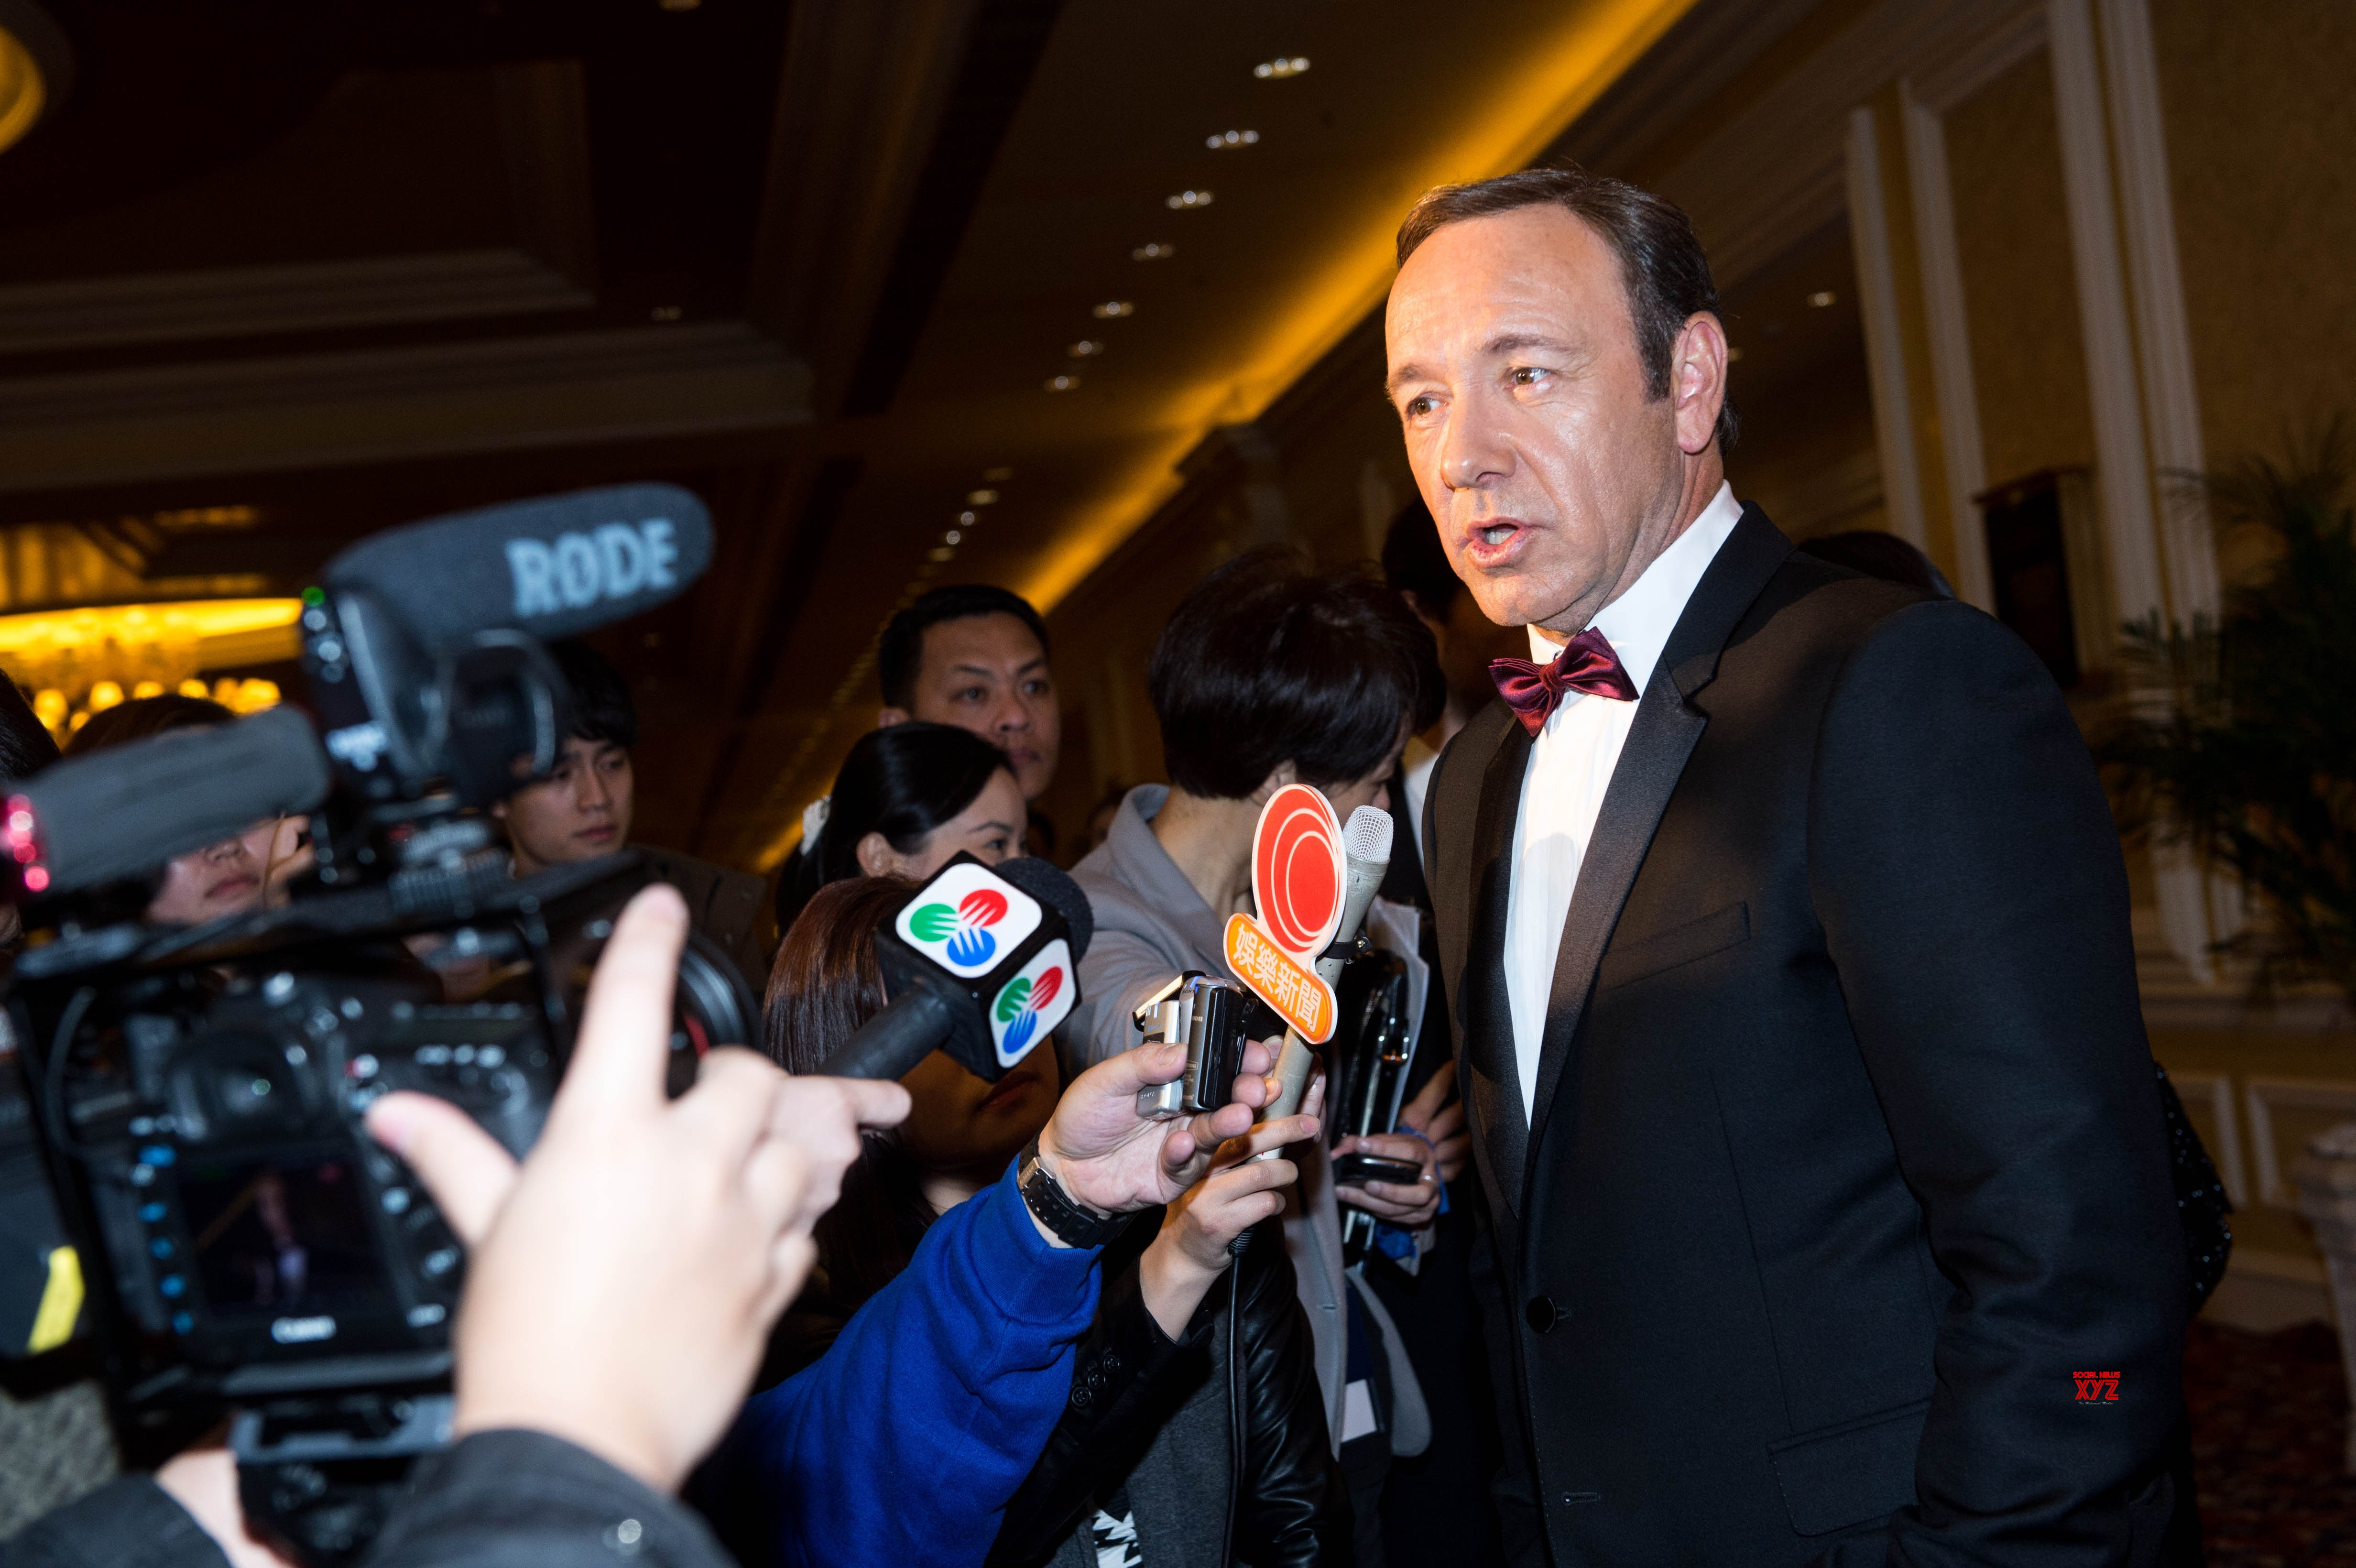 Kevin Spacey accuser allowed to remain anonymous